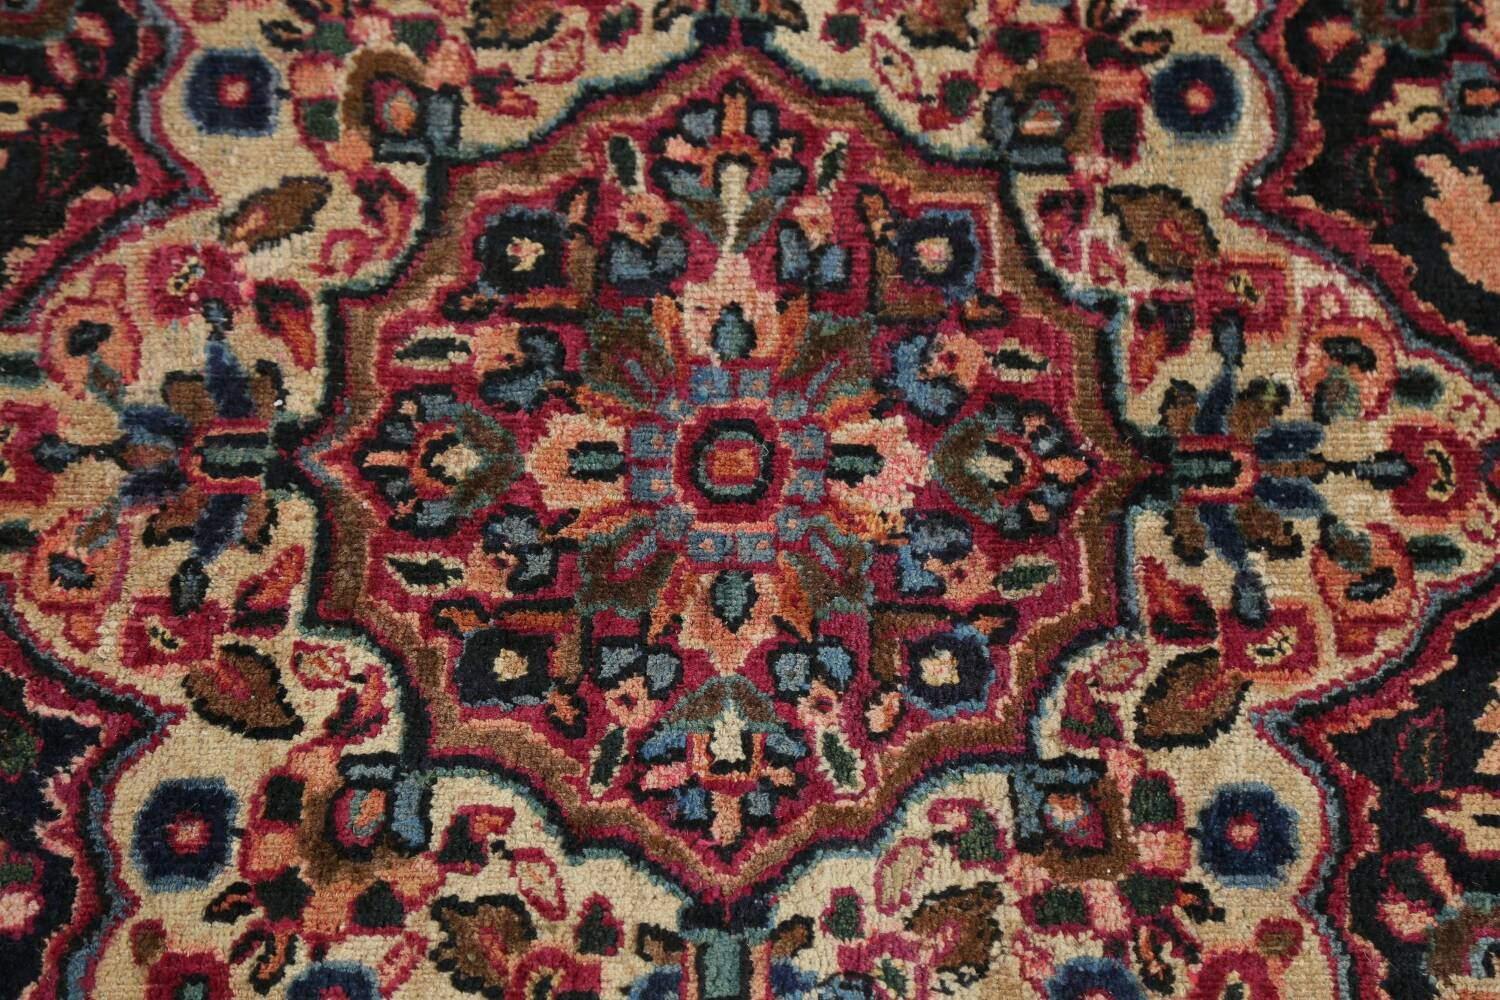 Antique Floral Red Dorokhsh Persian Rug Large 11x14 image 12